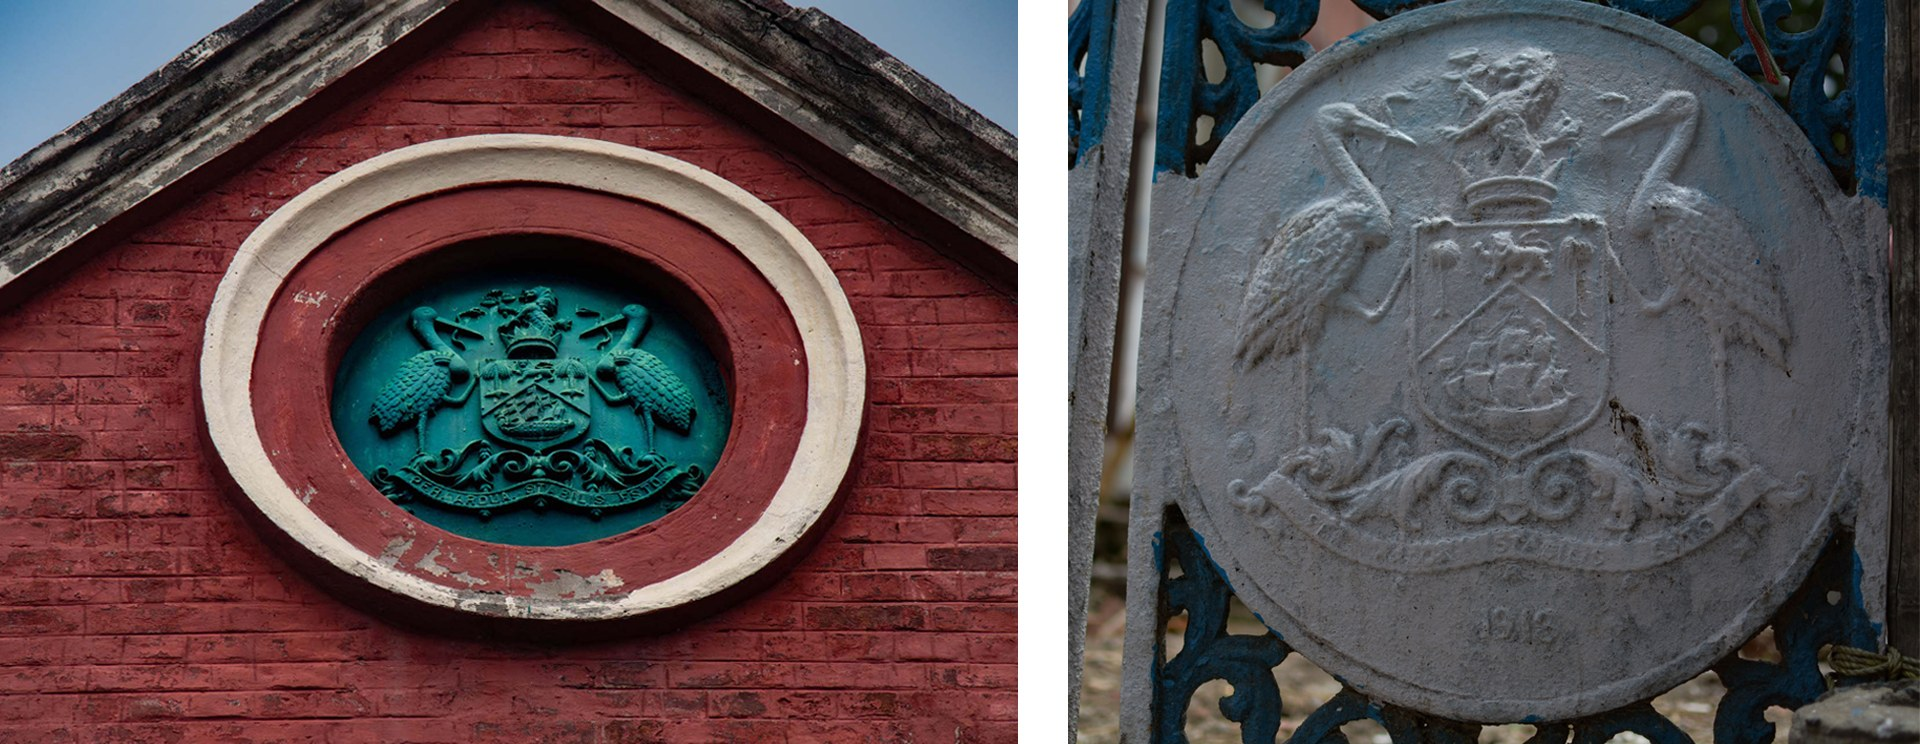 A closer look at the emblem reveals the British crown and two storks with serpents in their beaks. This was the coat of arms awarded to the Calcutta Municipal Corporation under English rule. It is unclear whether the bird was chosen for its role in waste management or simply because they were everywhere. The same crest also marks a wrought-iron gate on Kolkata's Alimuddin Street, near the Municipal Office. Photos: Masudur Rahim Rubai